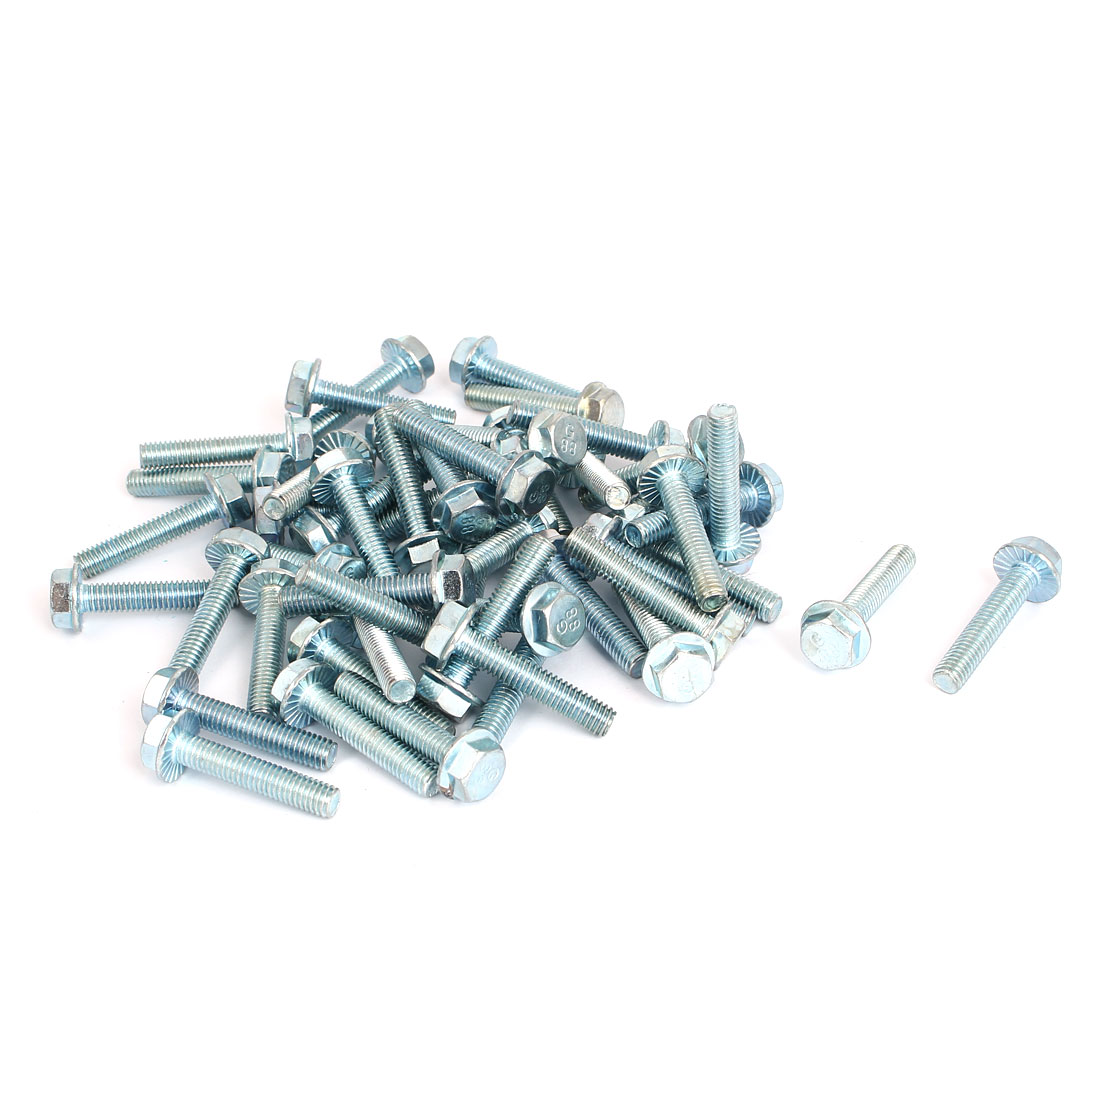 M6x30mm Grade 8.8 Metric Serrated Hex Flange Screws Bolts 50pcs